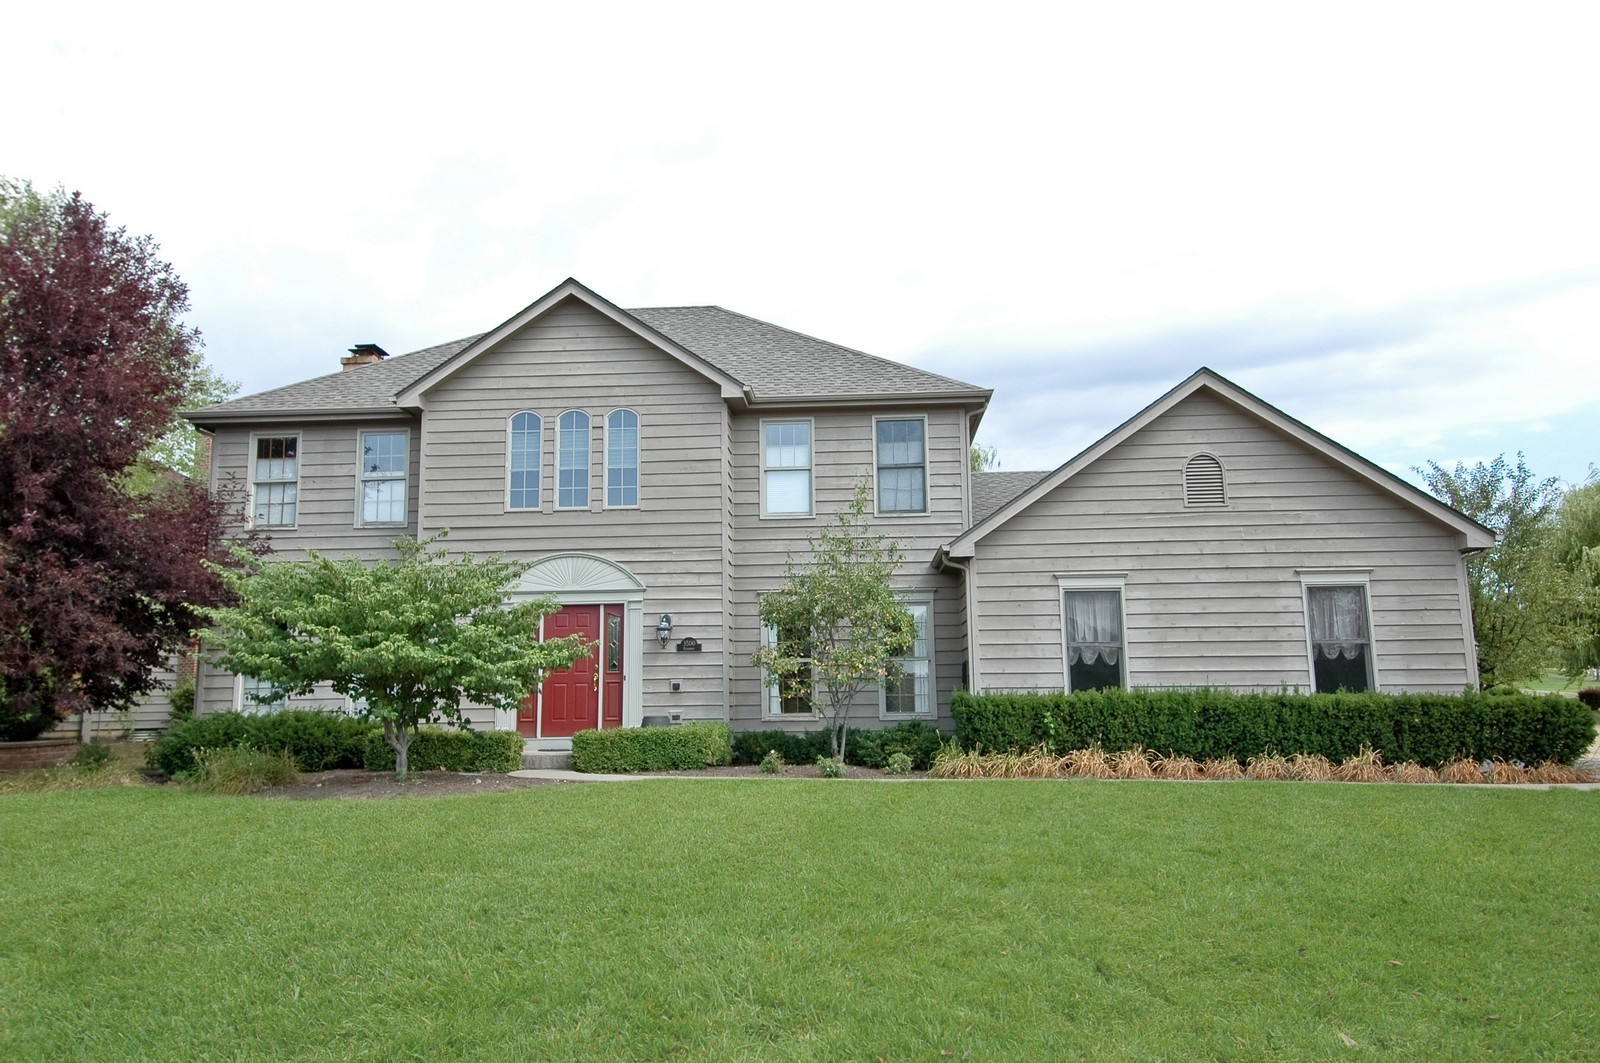 Real Estate Photography - 3500 Persimmon Dr, Algonquin, IL, 60102 - Front View